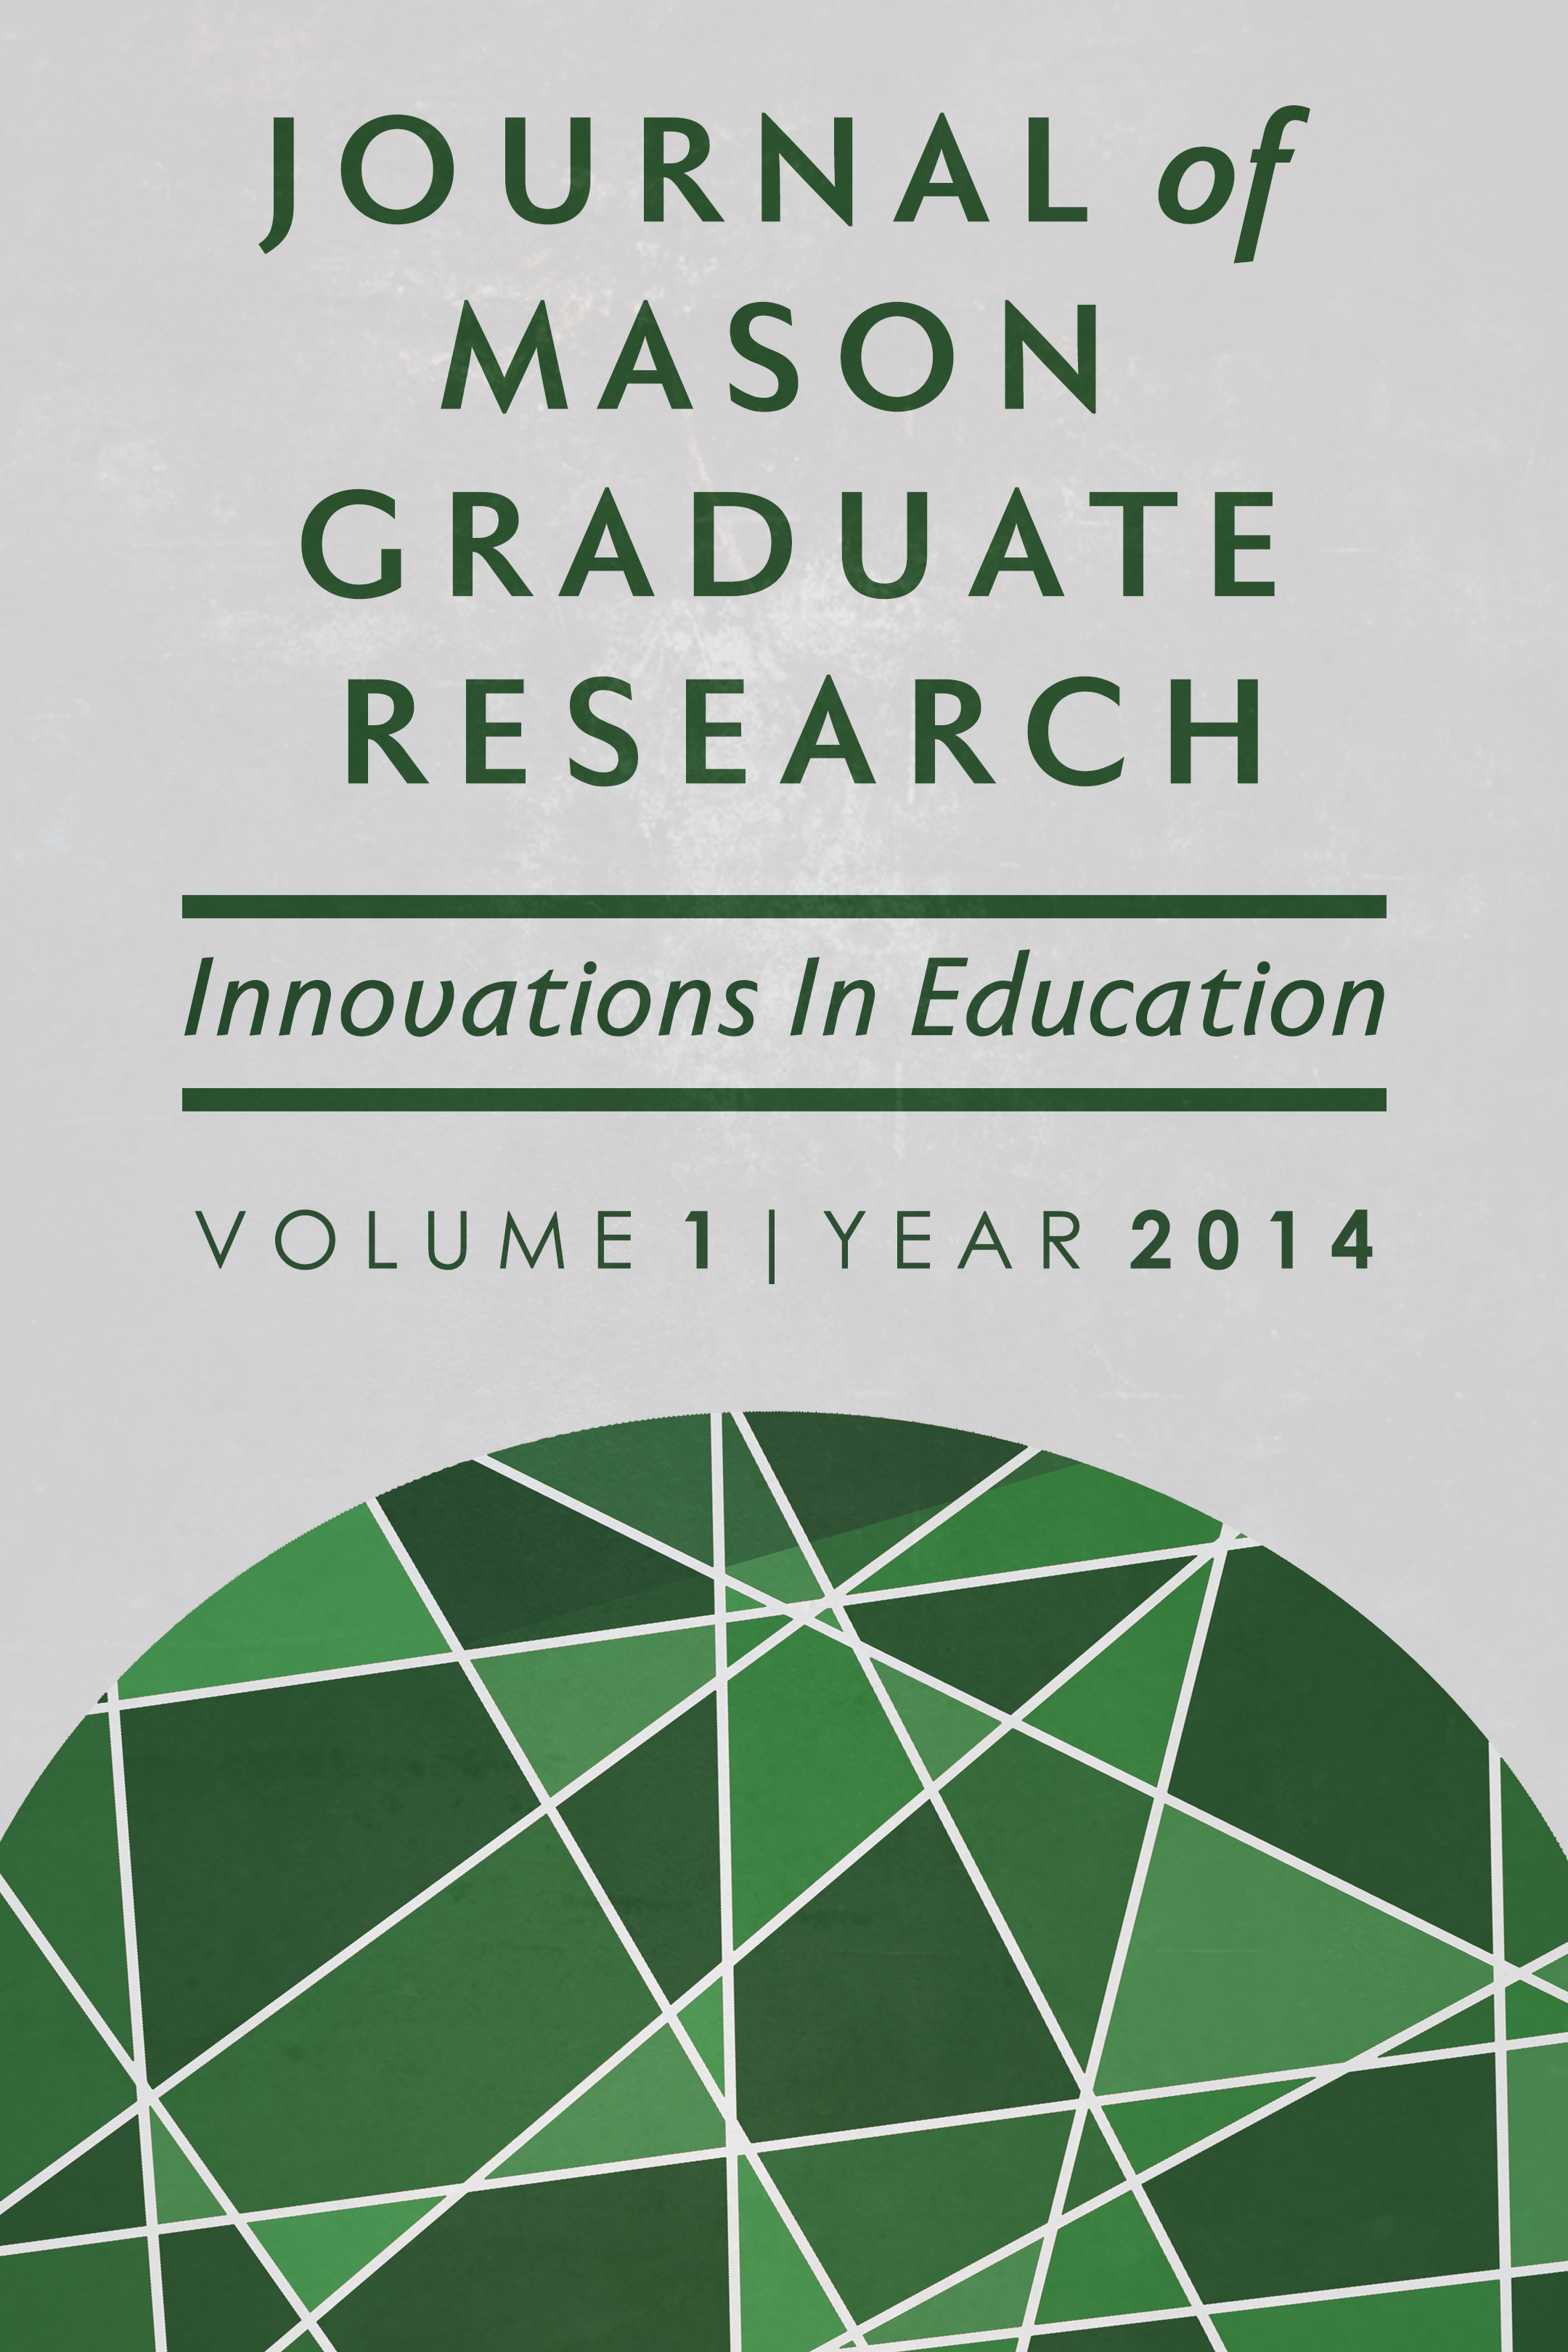 Journal of Mason Graduate Research, Volume 1, Issue 1, Innovations in Education